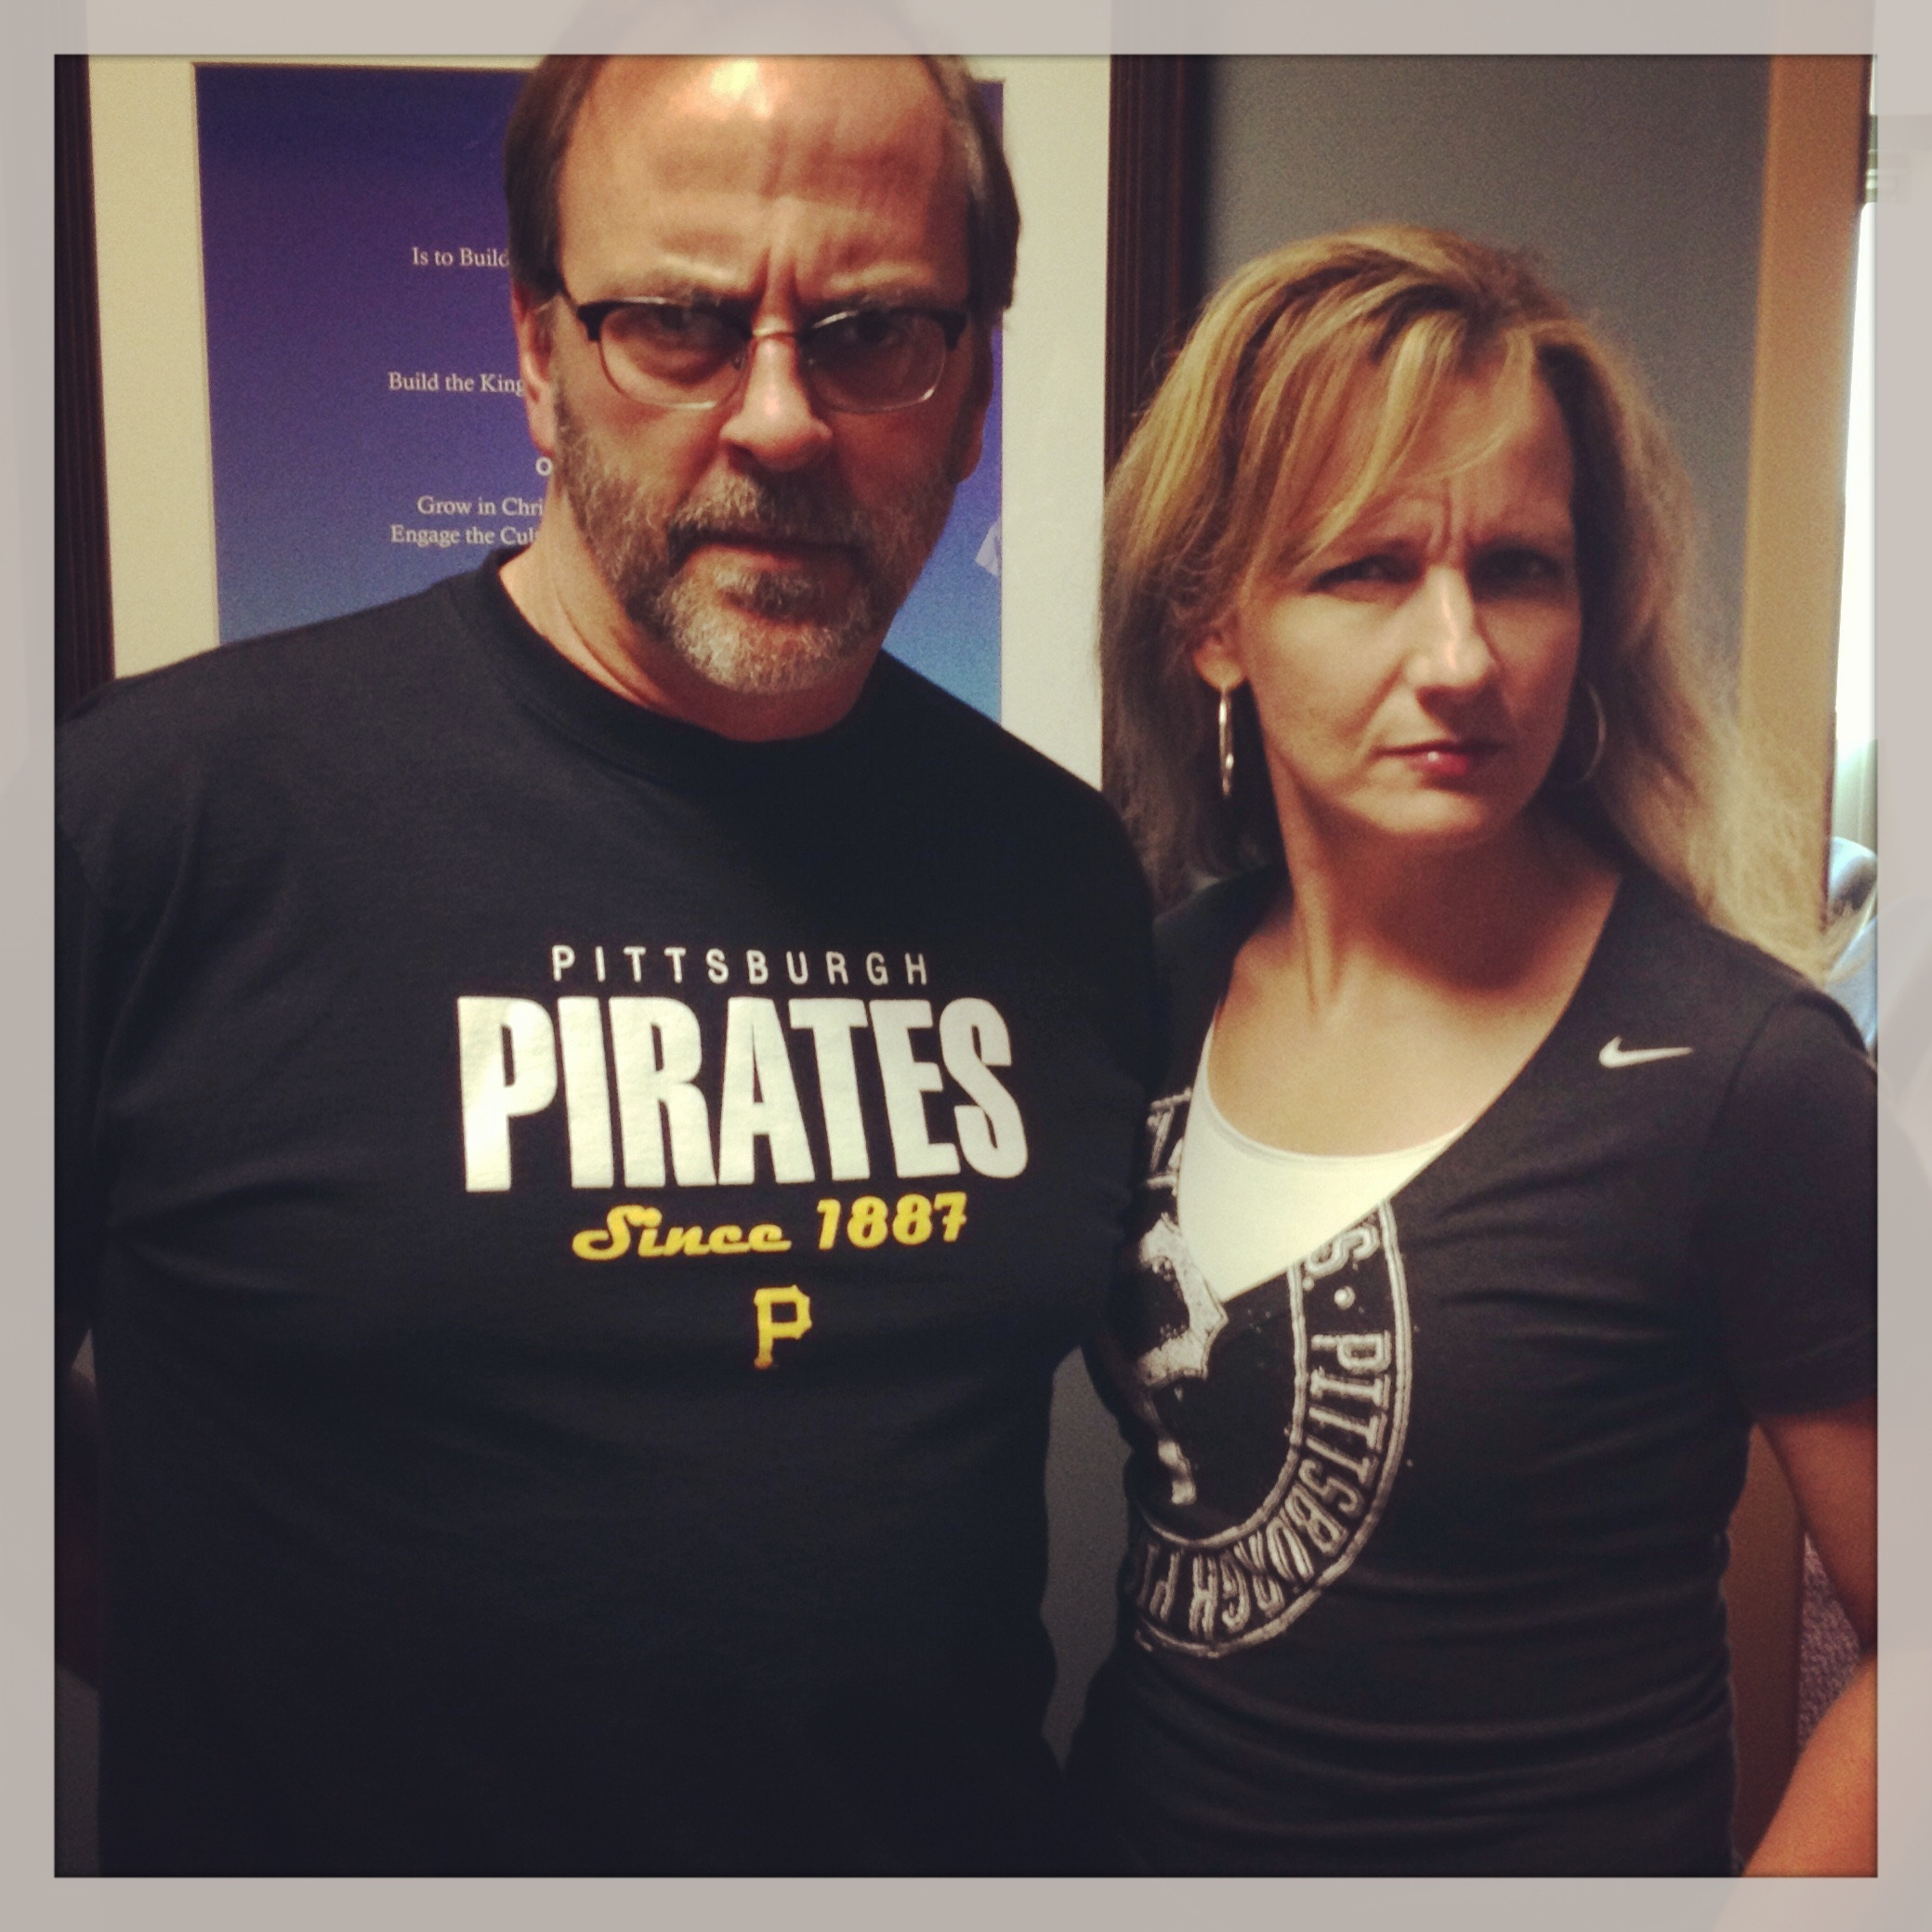 hating on the Reds, first Pirate playoff game in 20 years (2013)